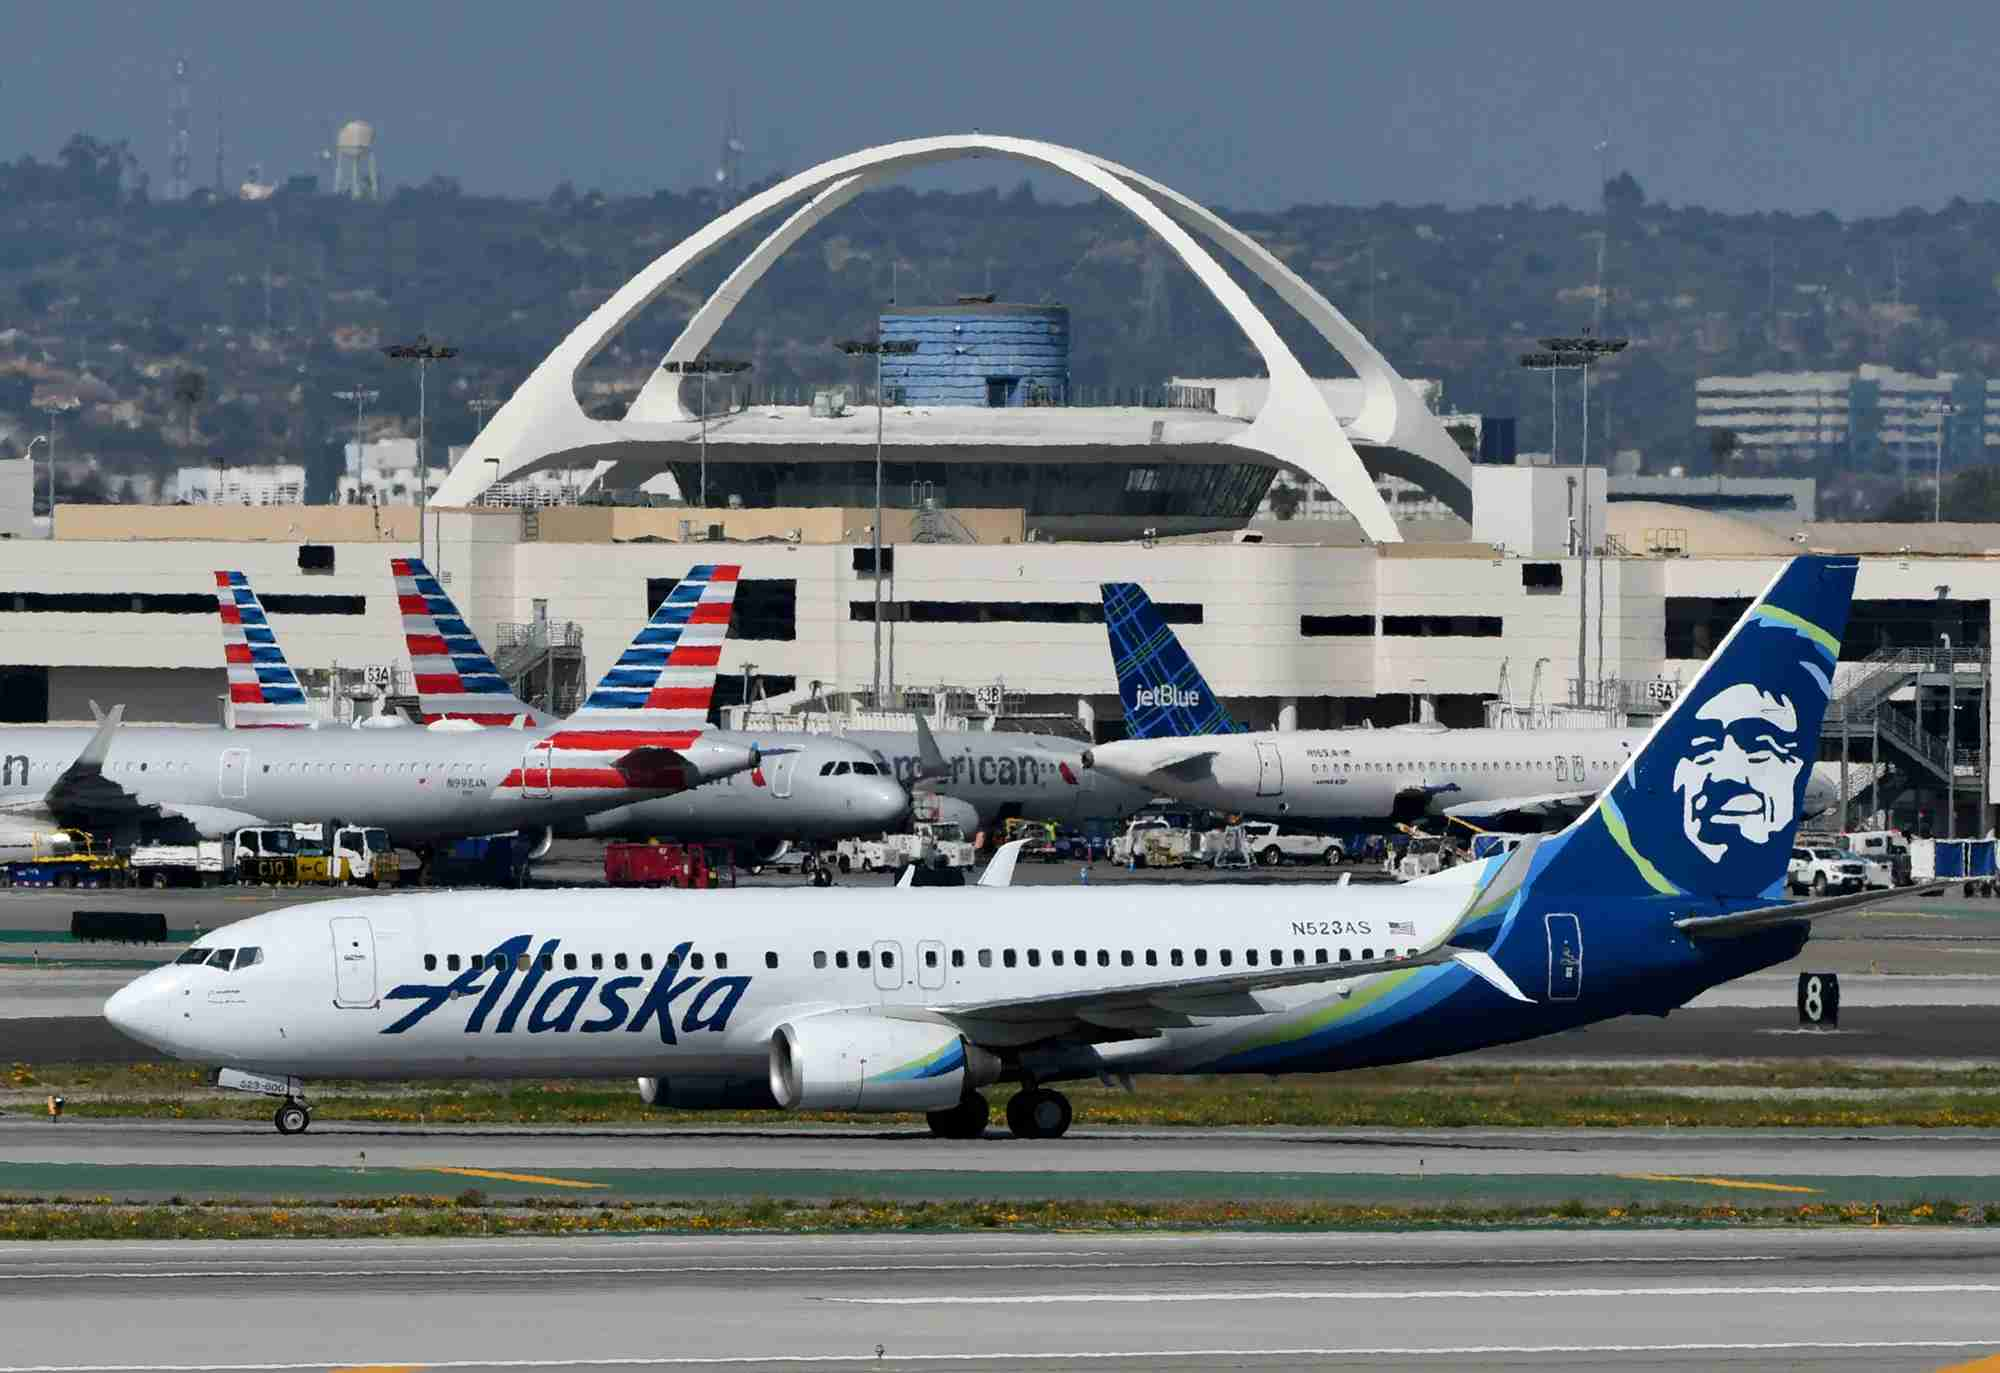 An Alaska Airlines 737-800 is seen at Los Angeles International Airport in March 2019. (Photo by Alberto Riva/The Points Guy)